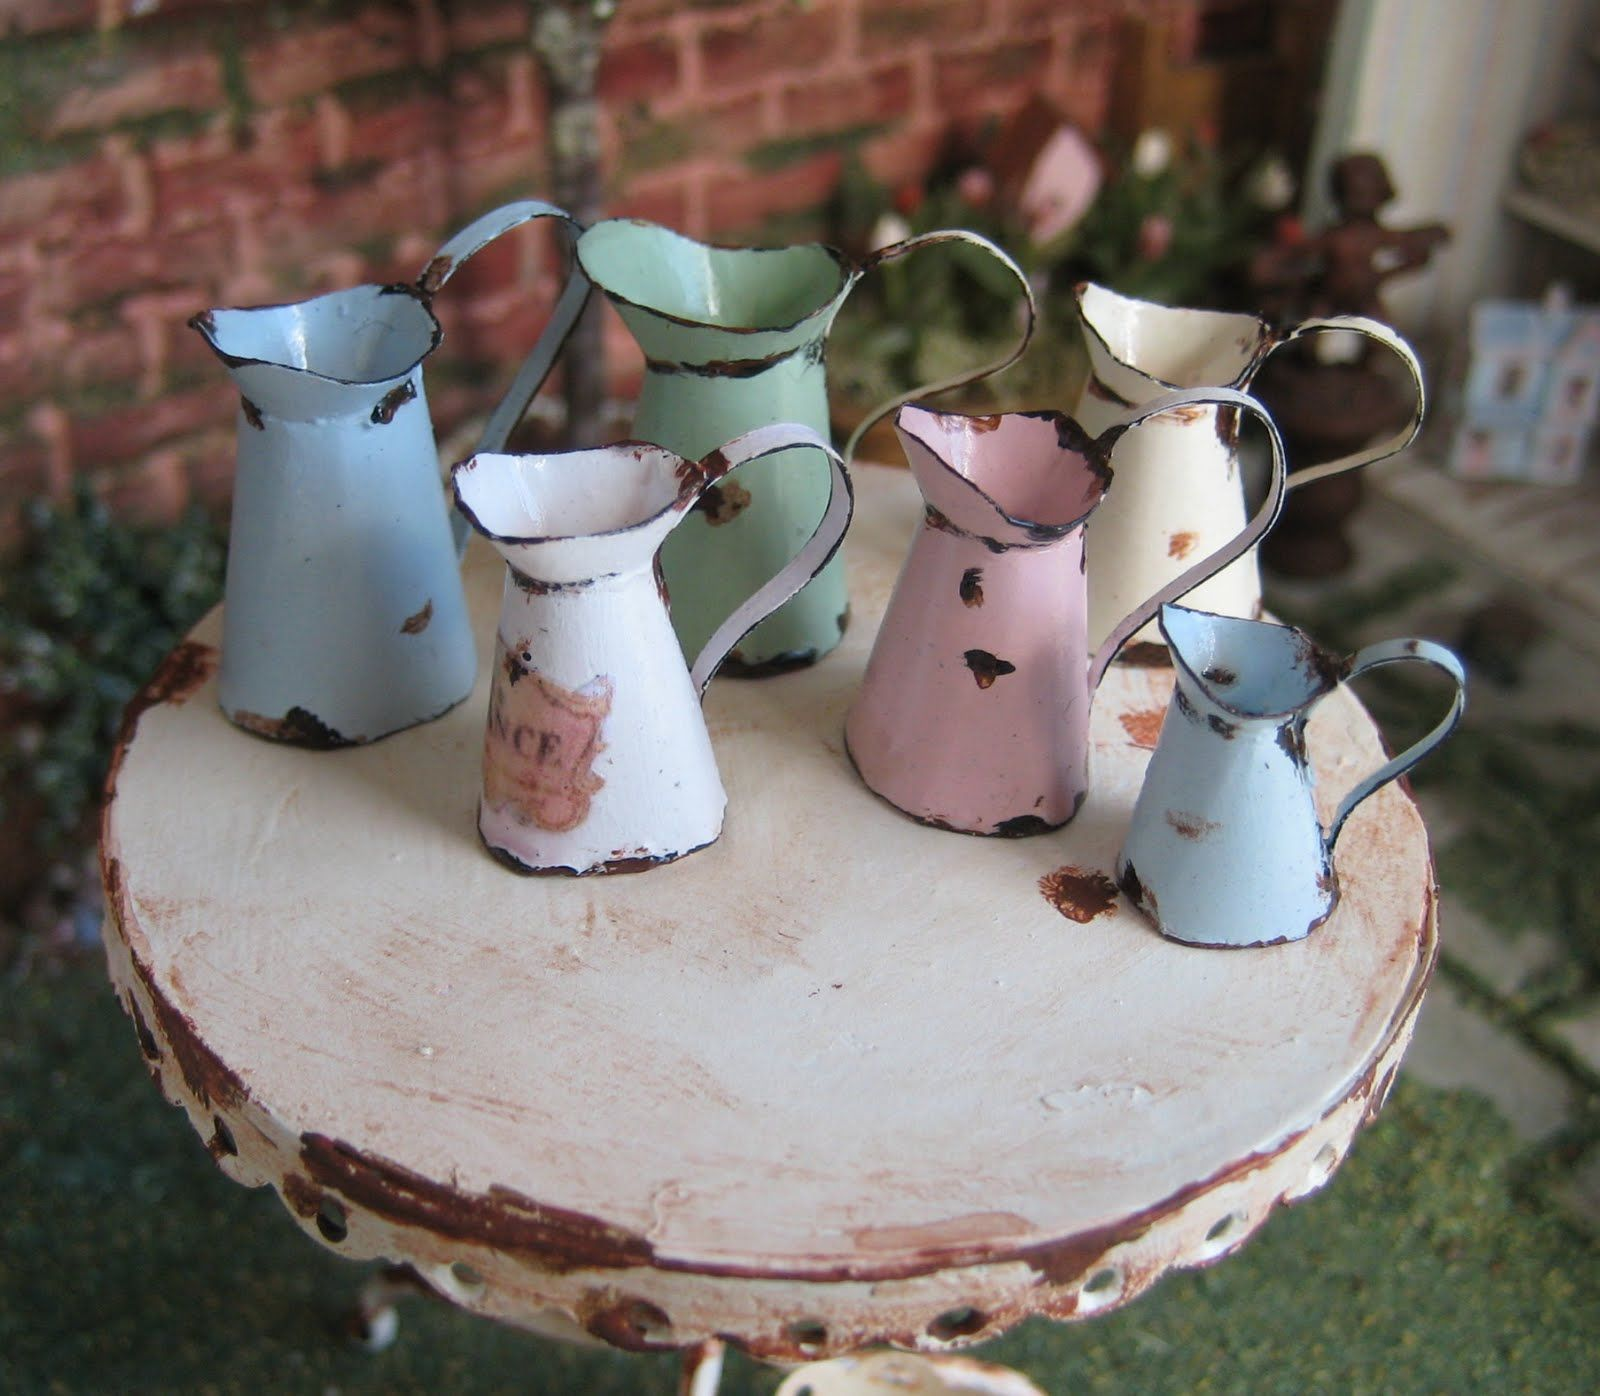 Vintage Kinderküche Chippy Pastel Pitchers | Emailgeschirr, Emaille, Teekanne